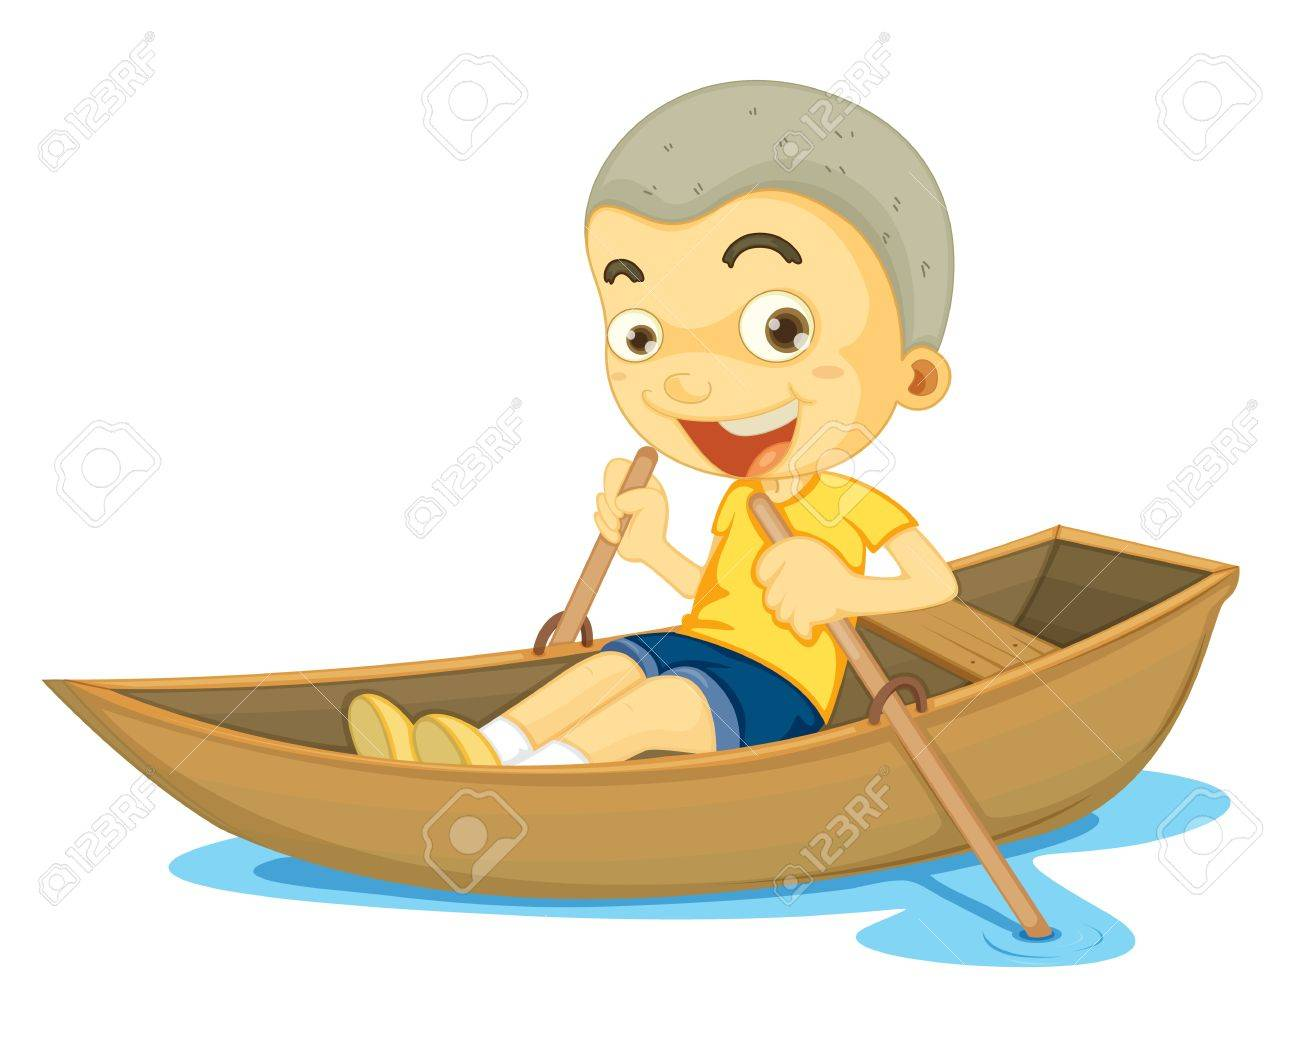 rowing boat images u0026 stock pictures royalty free rowing boat